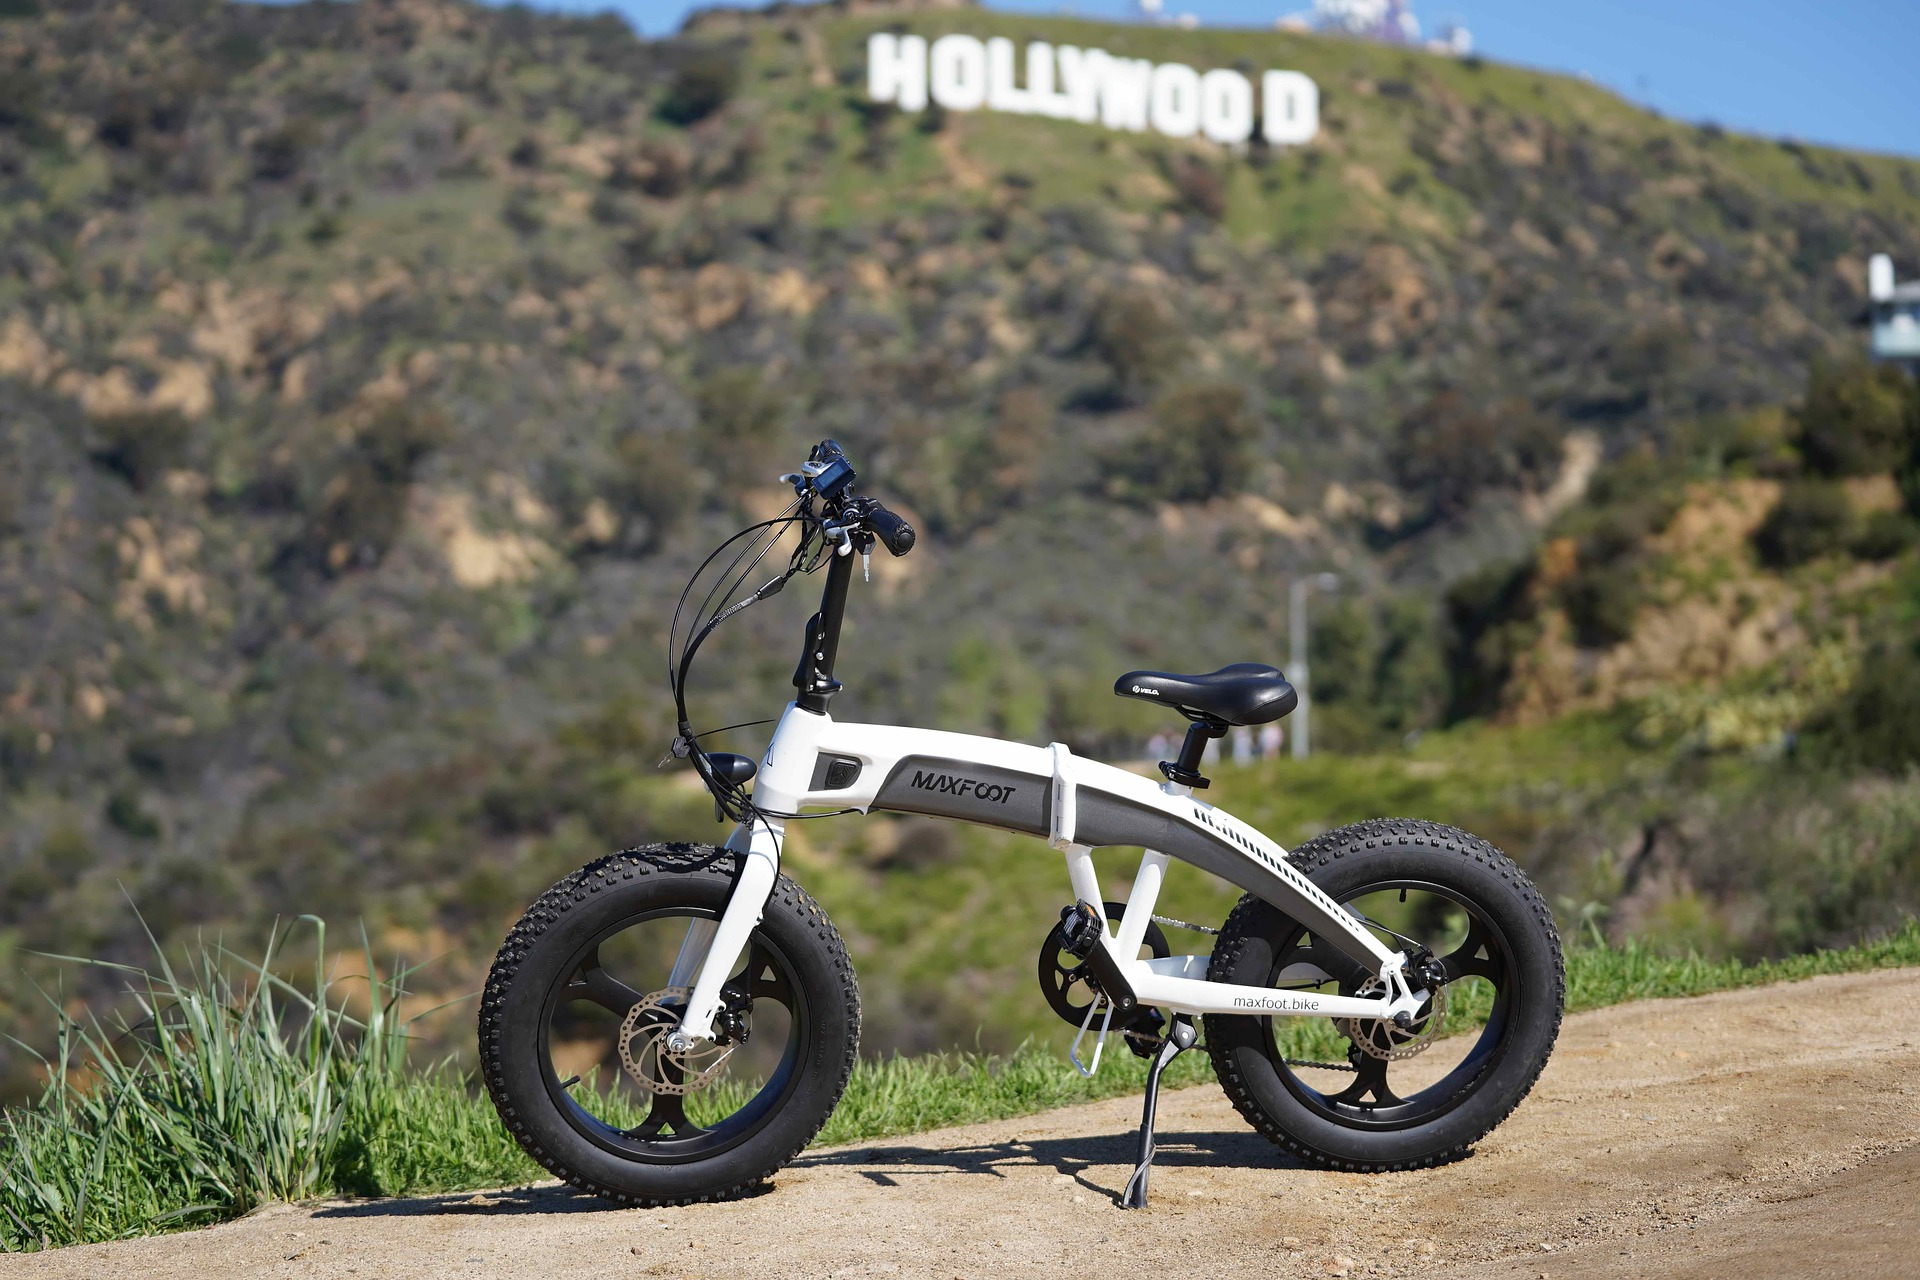 White folding E-bike standing with a Hollywood sign in the background